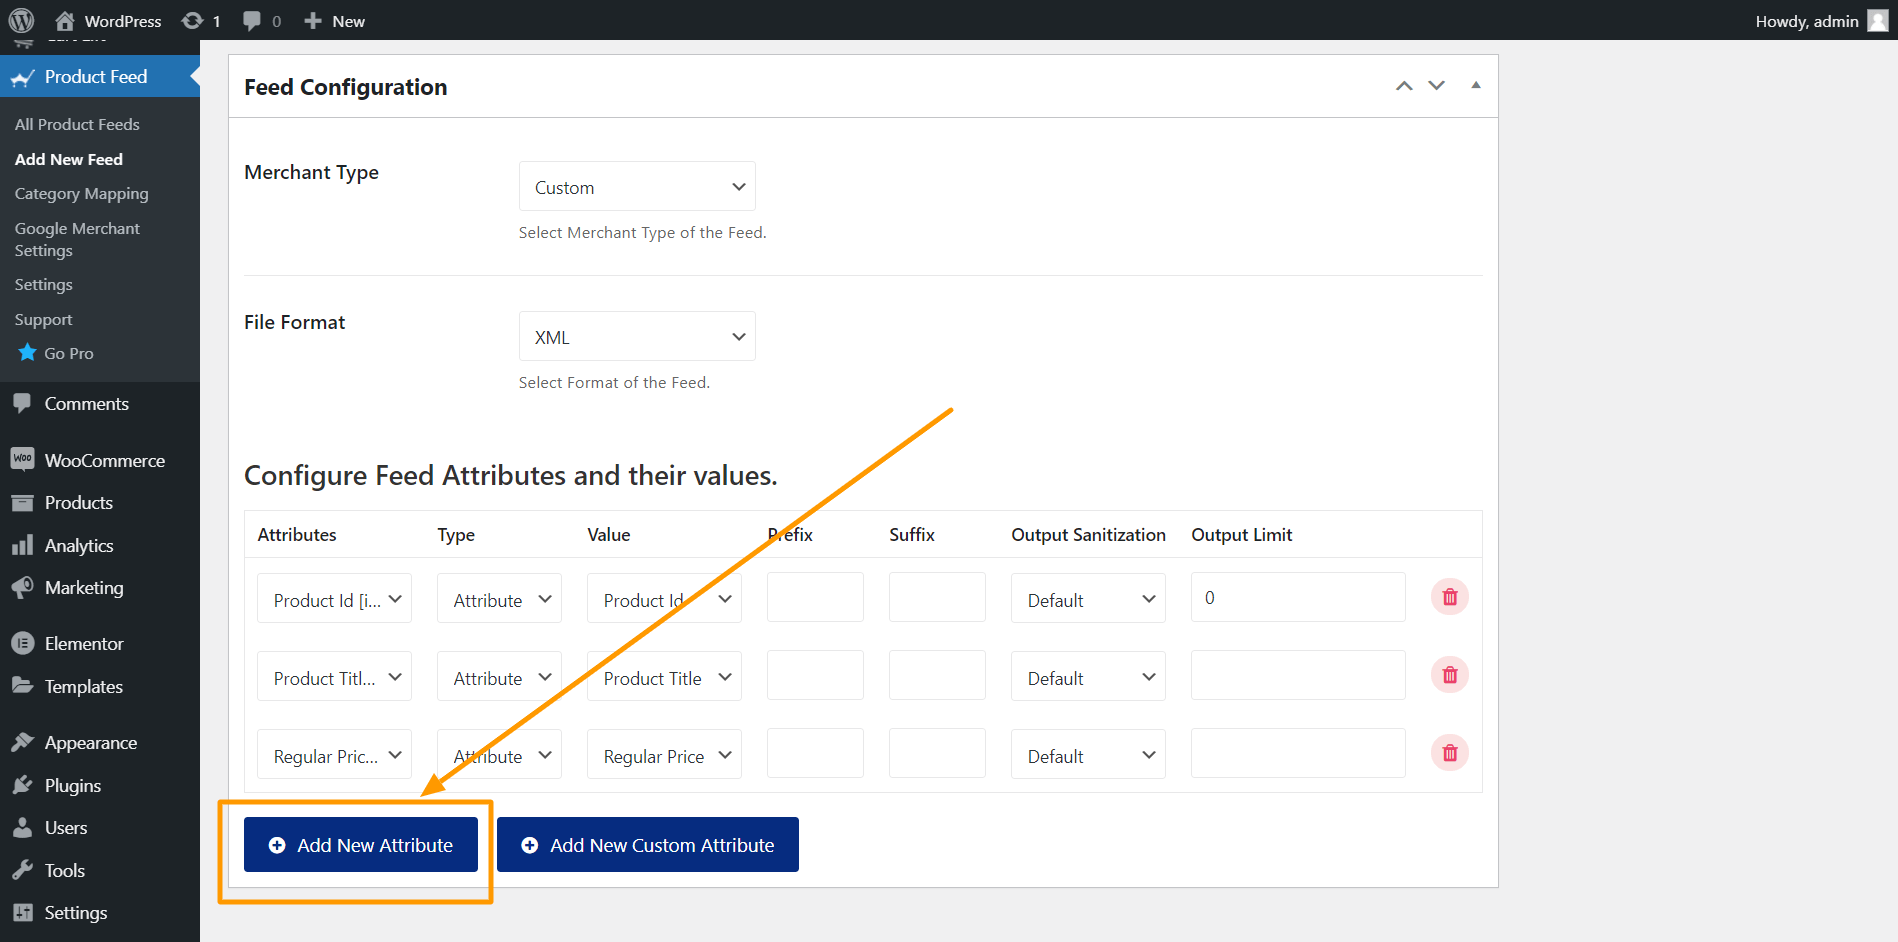 Product Feed Manager Add New Attribute